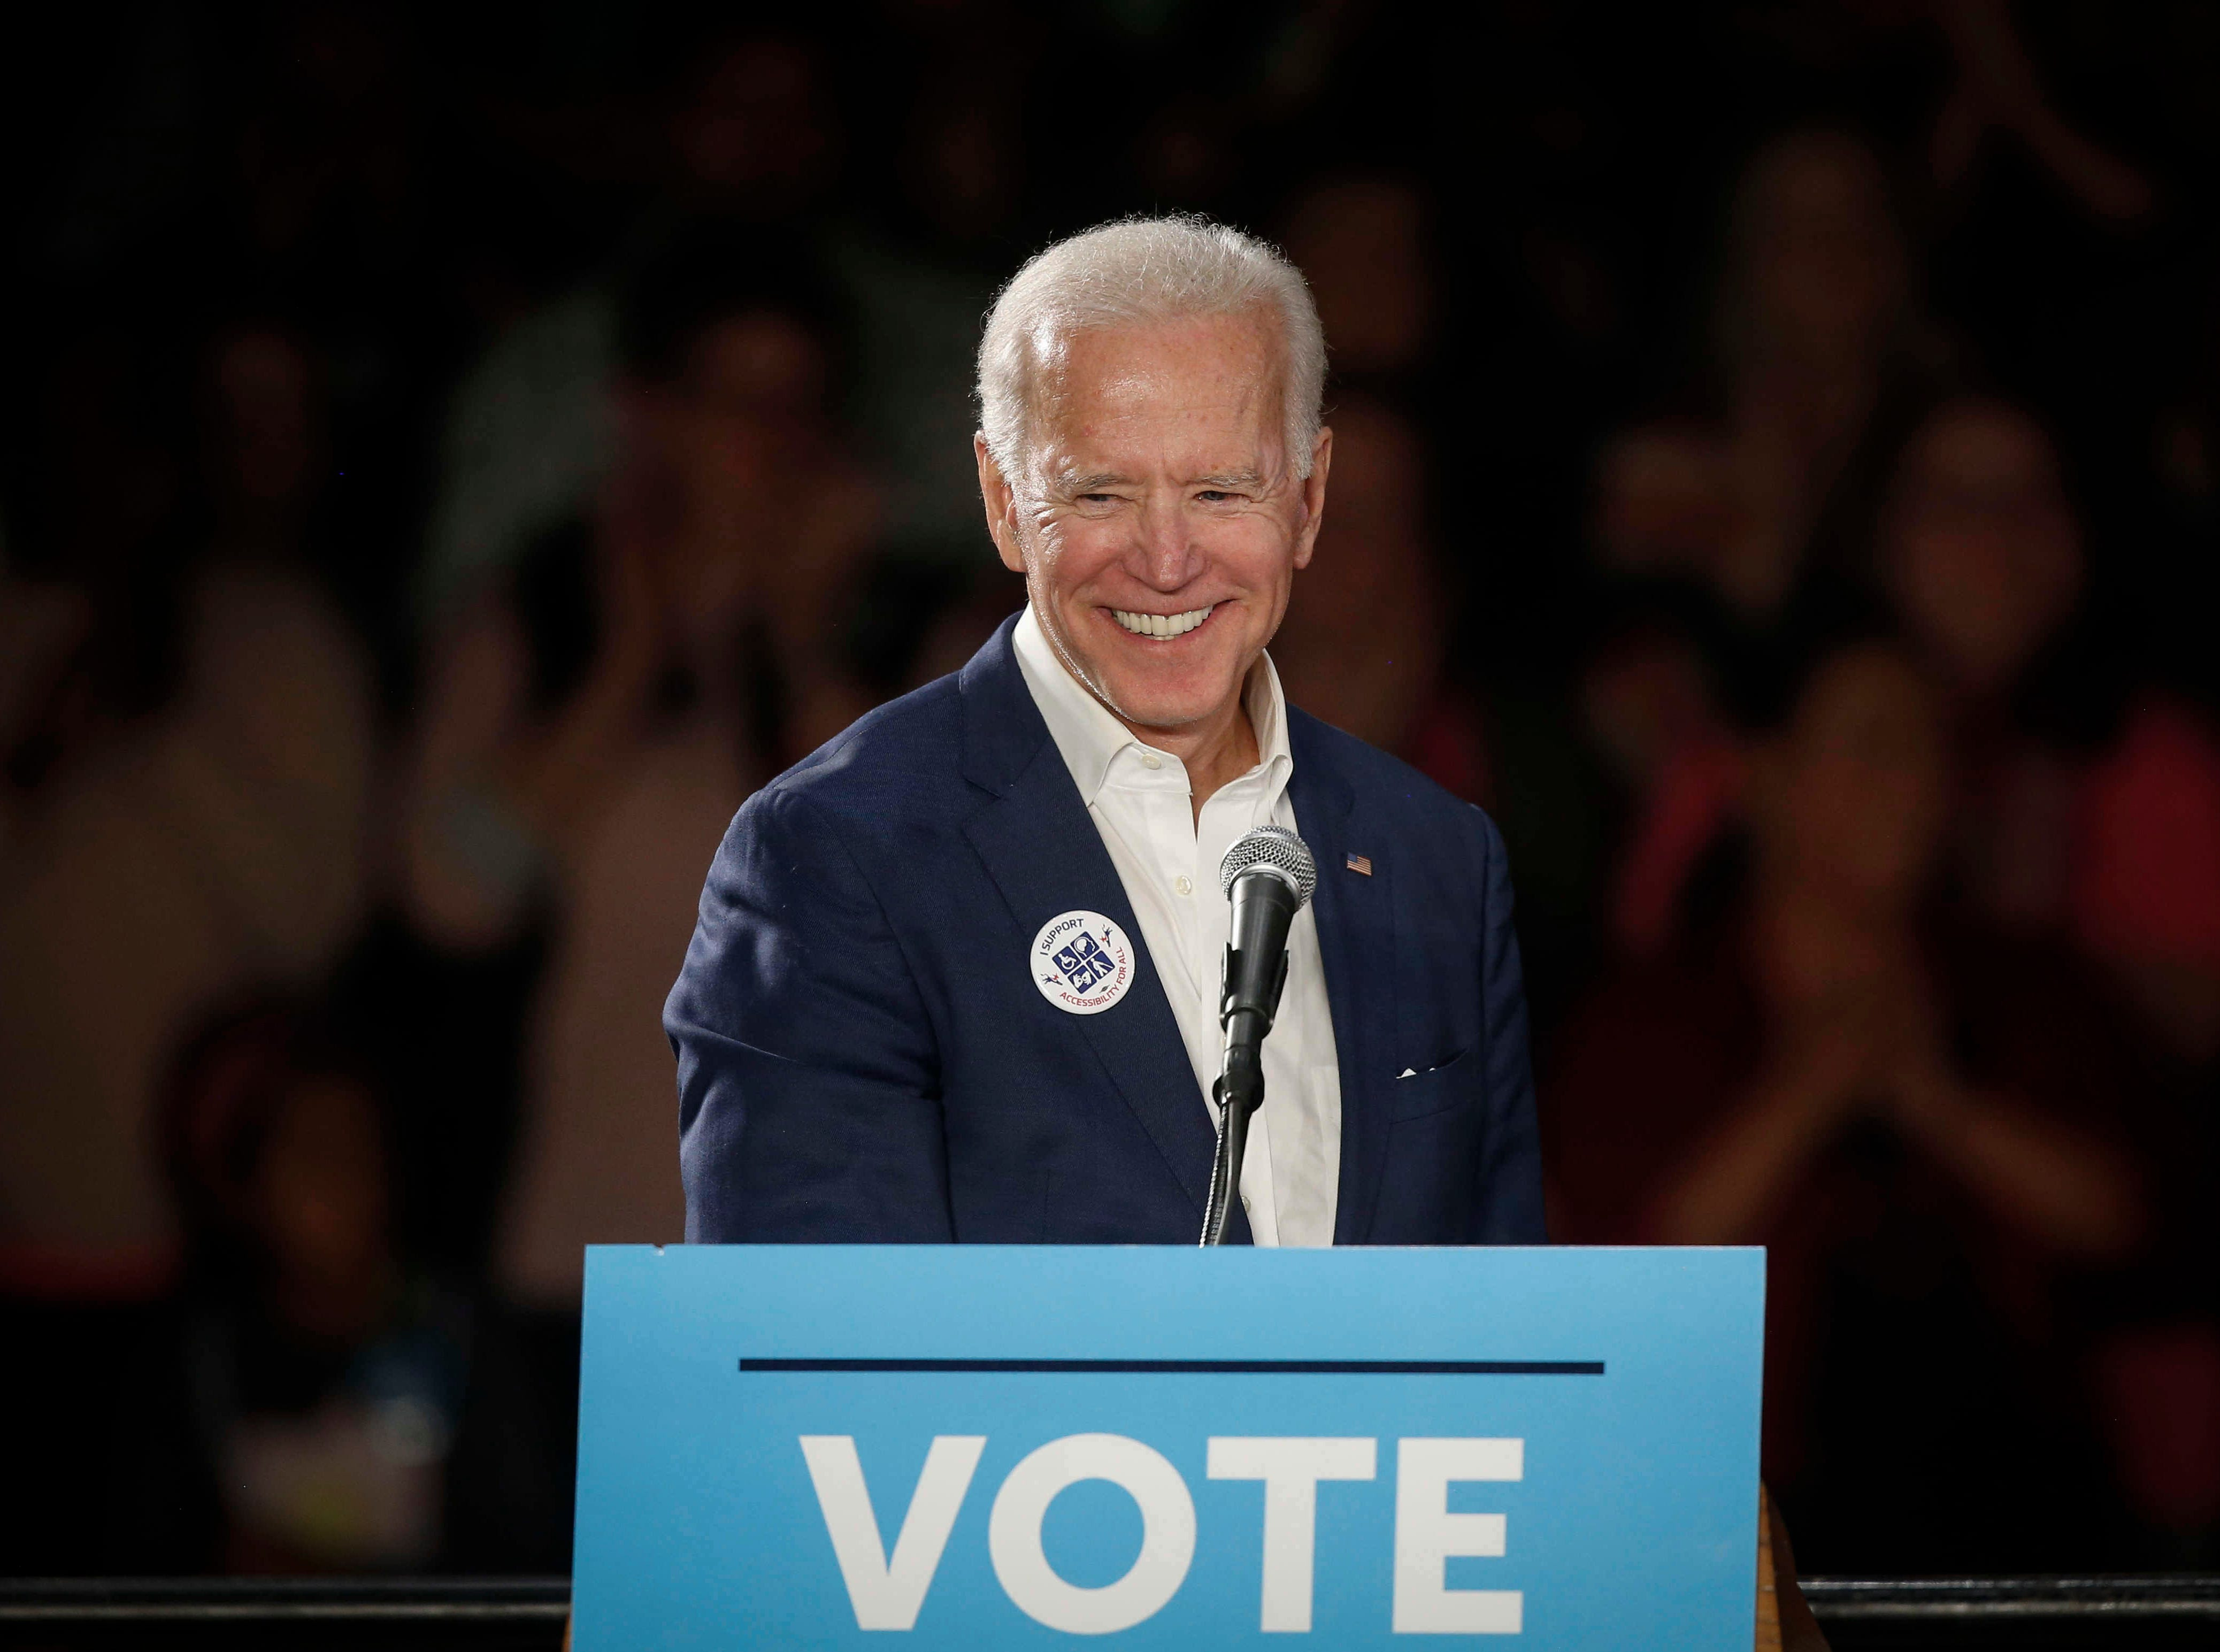 Iowa Politics Newsletter: Biden's chances in Iowa; Ernst says feds spied on President Trump